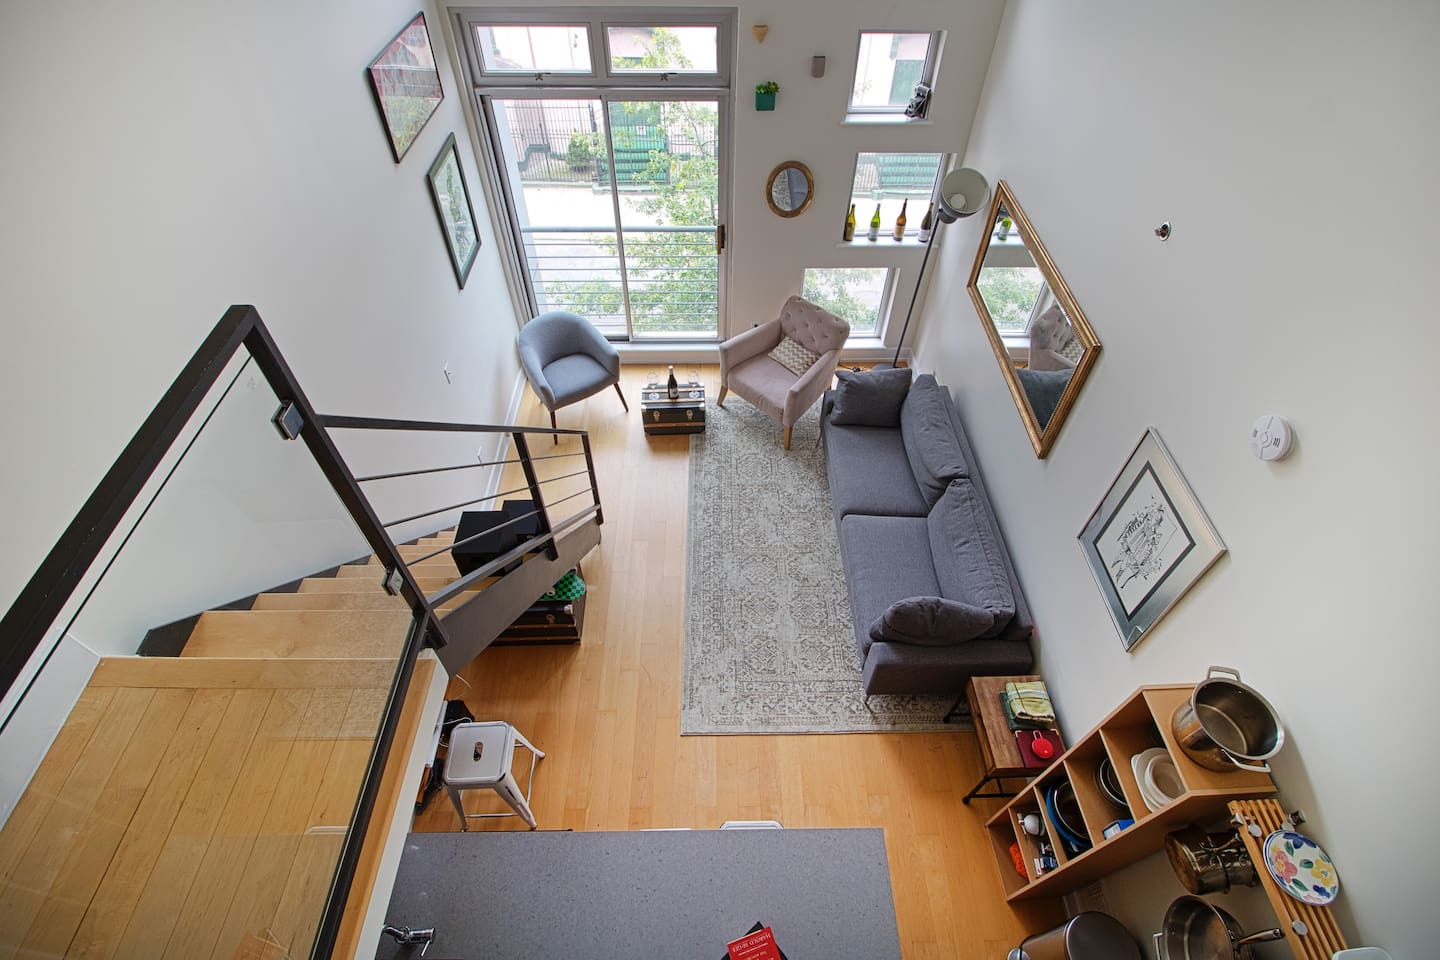 Extremely high ceilings. Lots of windows. Plenty of natural light.